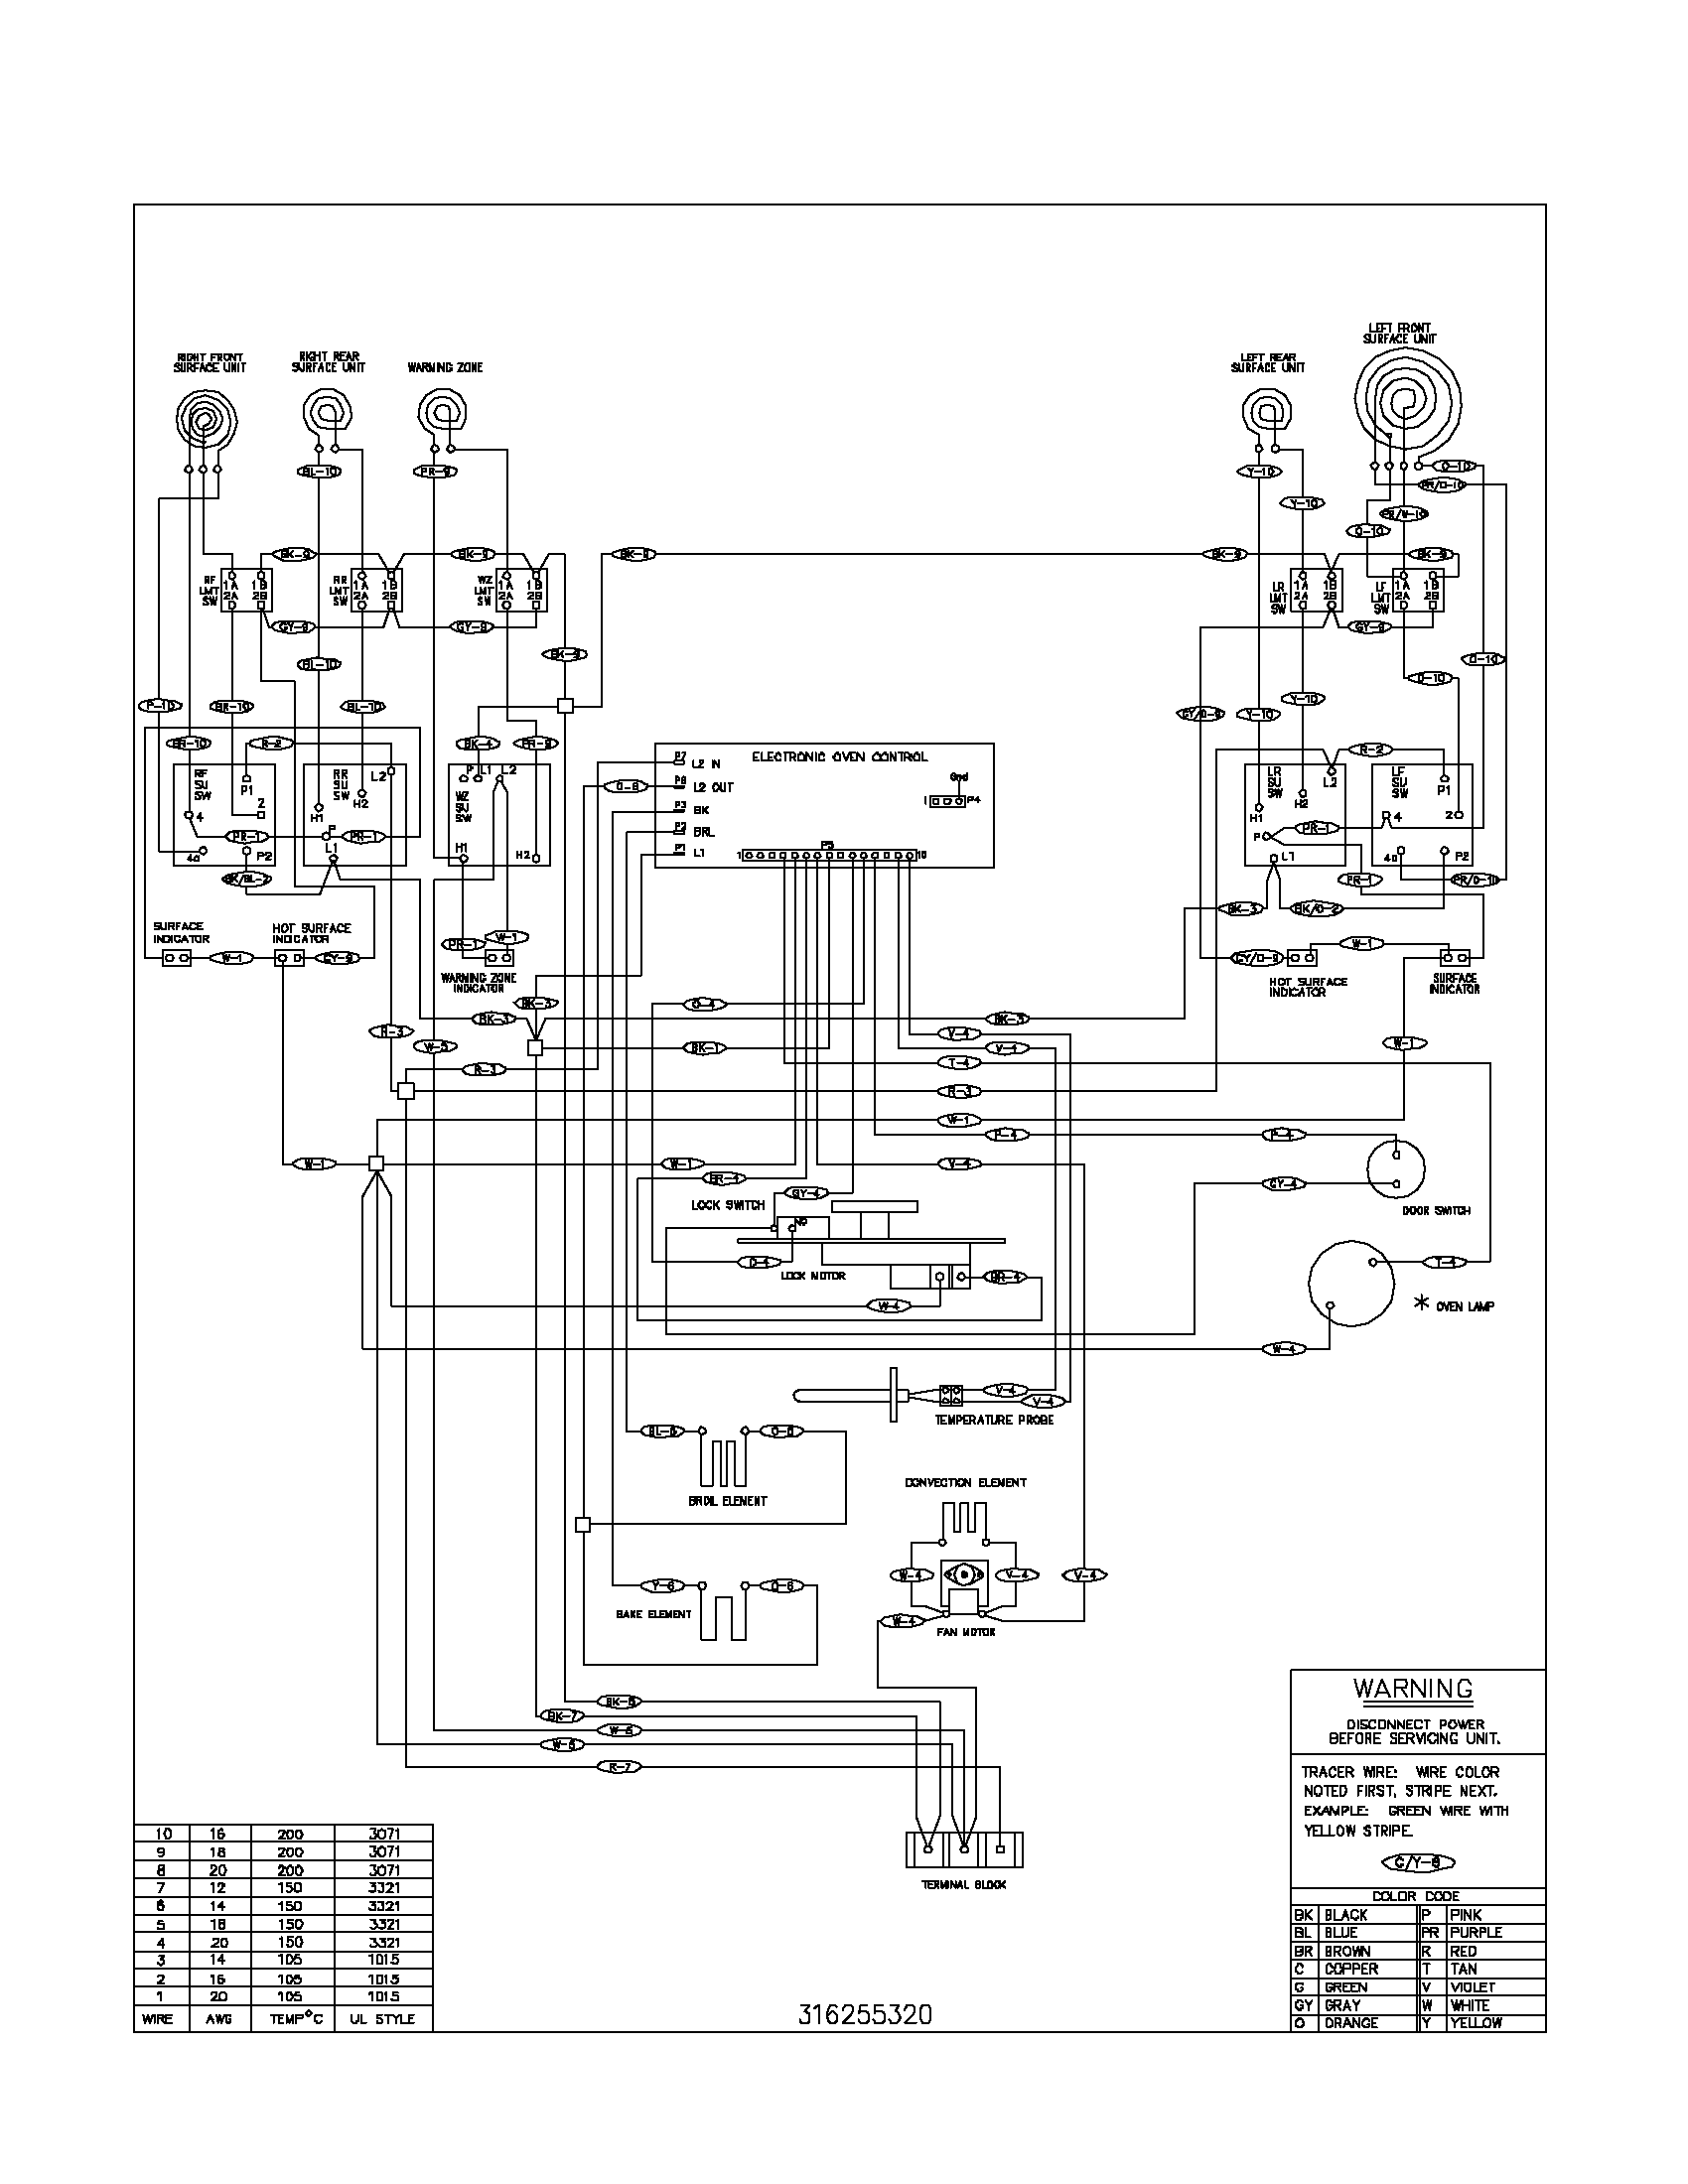 wiring diagram parts whirlpool fefl88acc electric range timer stove clocks and Whirlpool Refrigerator Model Numbers at eliteediting.co